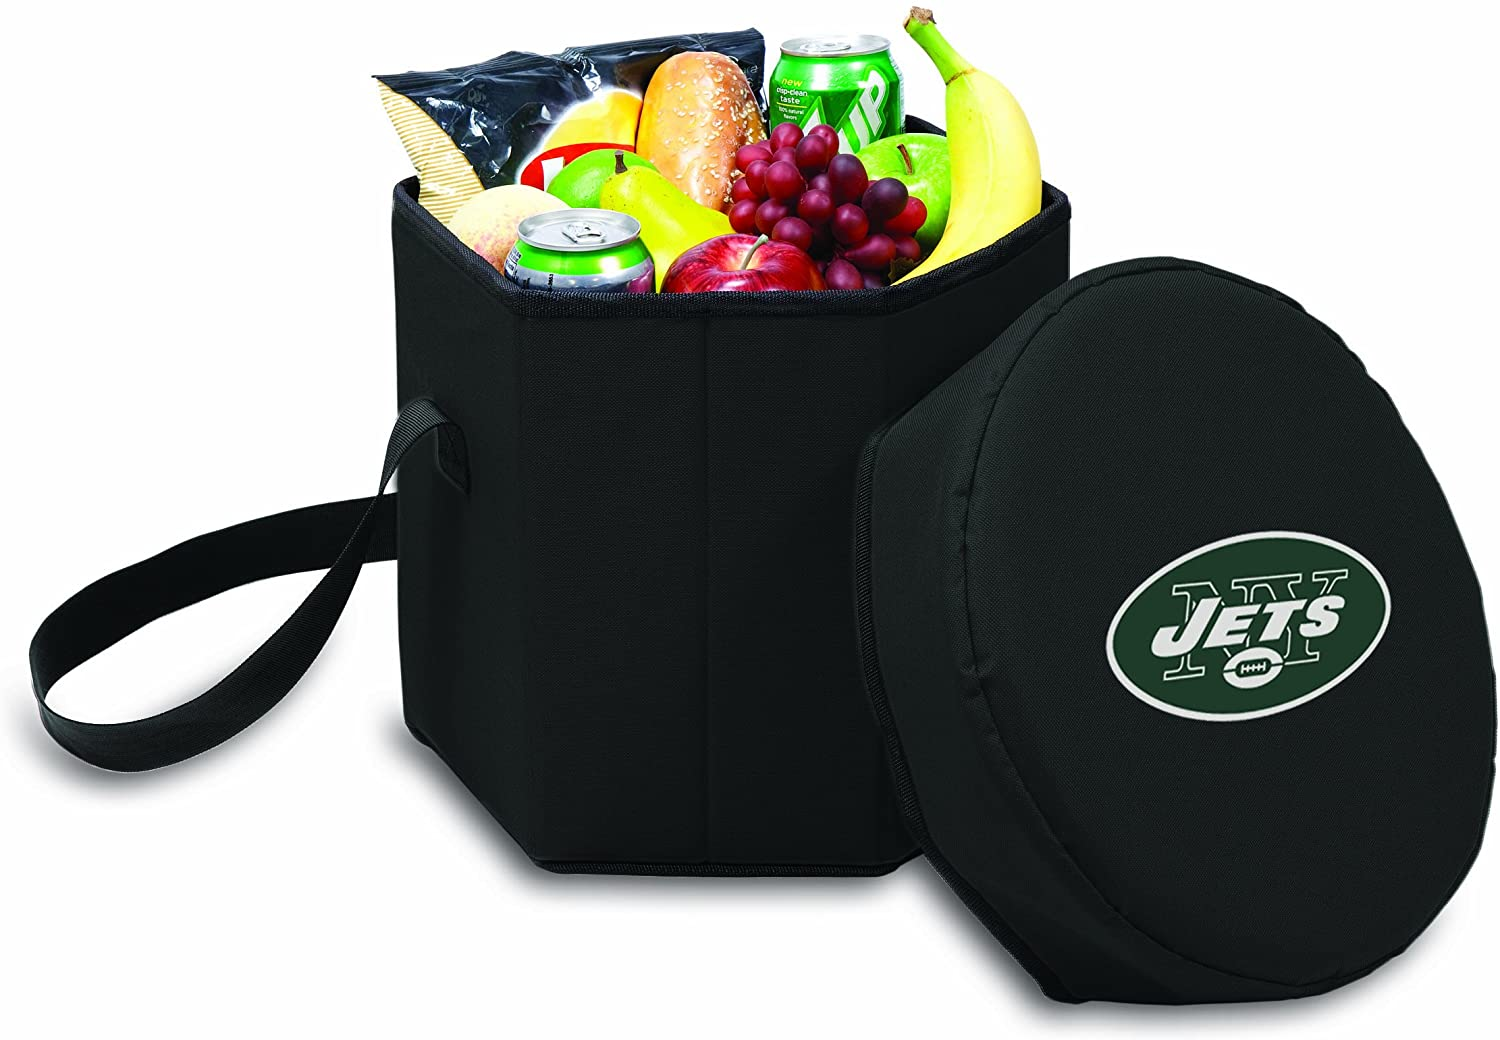 NFL New York Jets Bongo Insulated Collapsible Cooler, Black